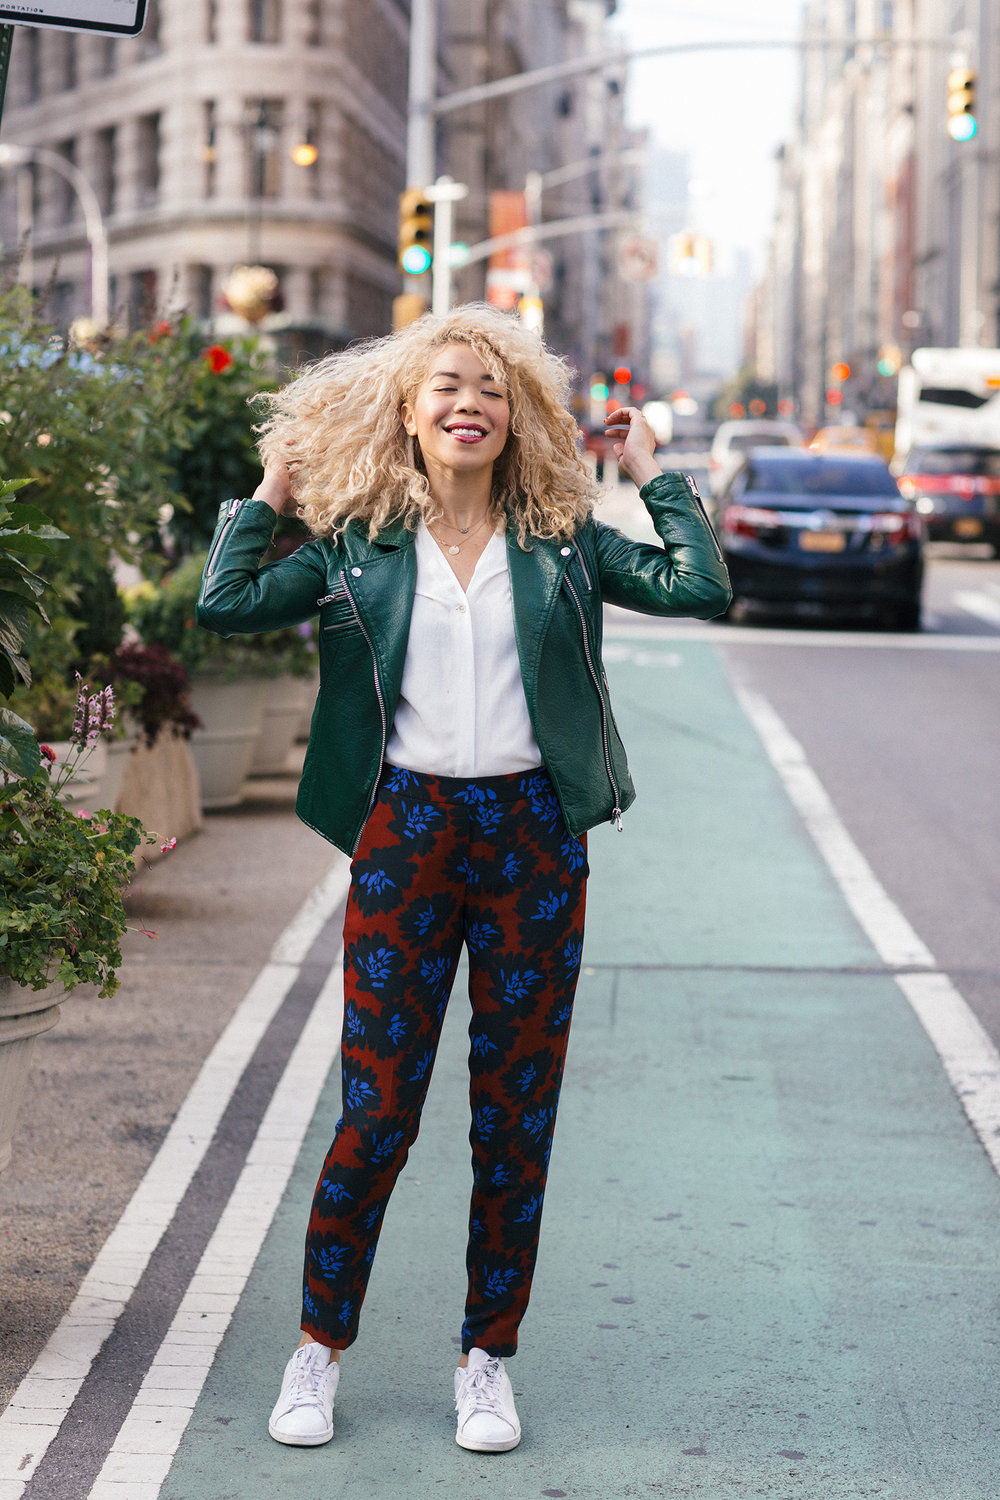 jcrew-floral-pants-outfit-ideas.jpg